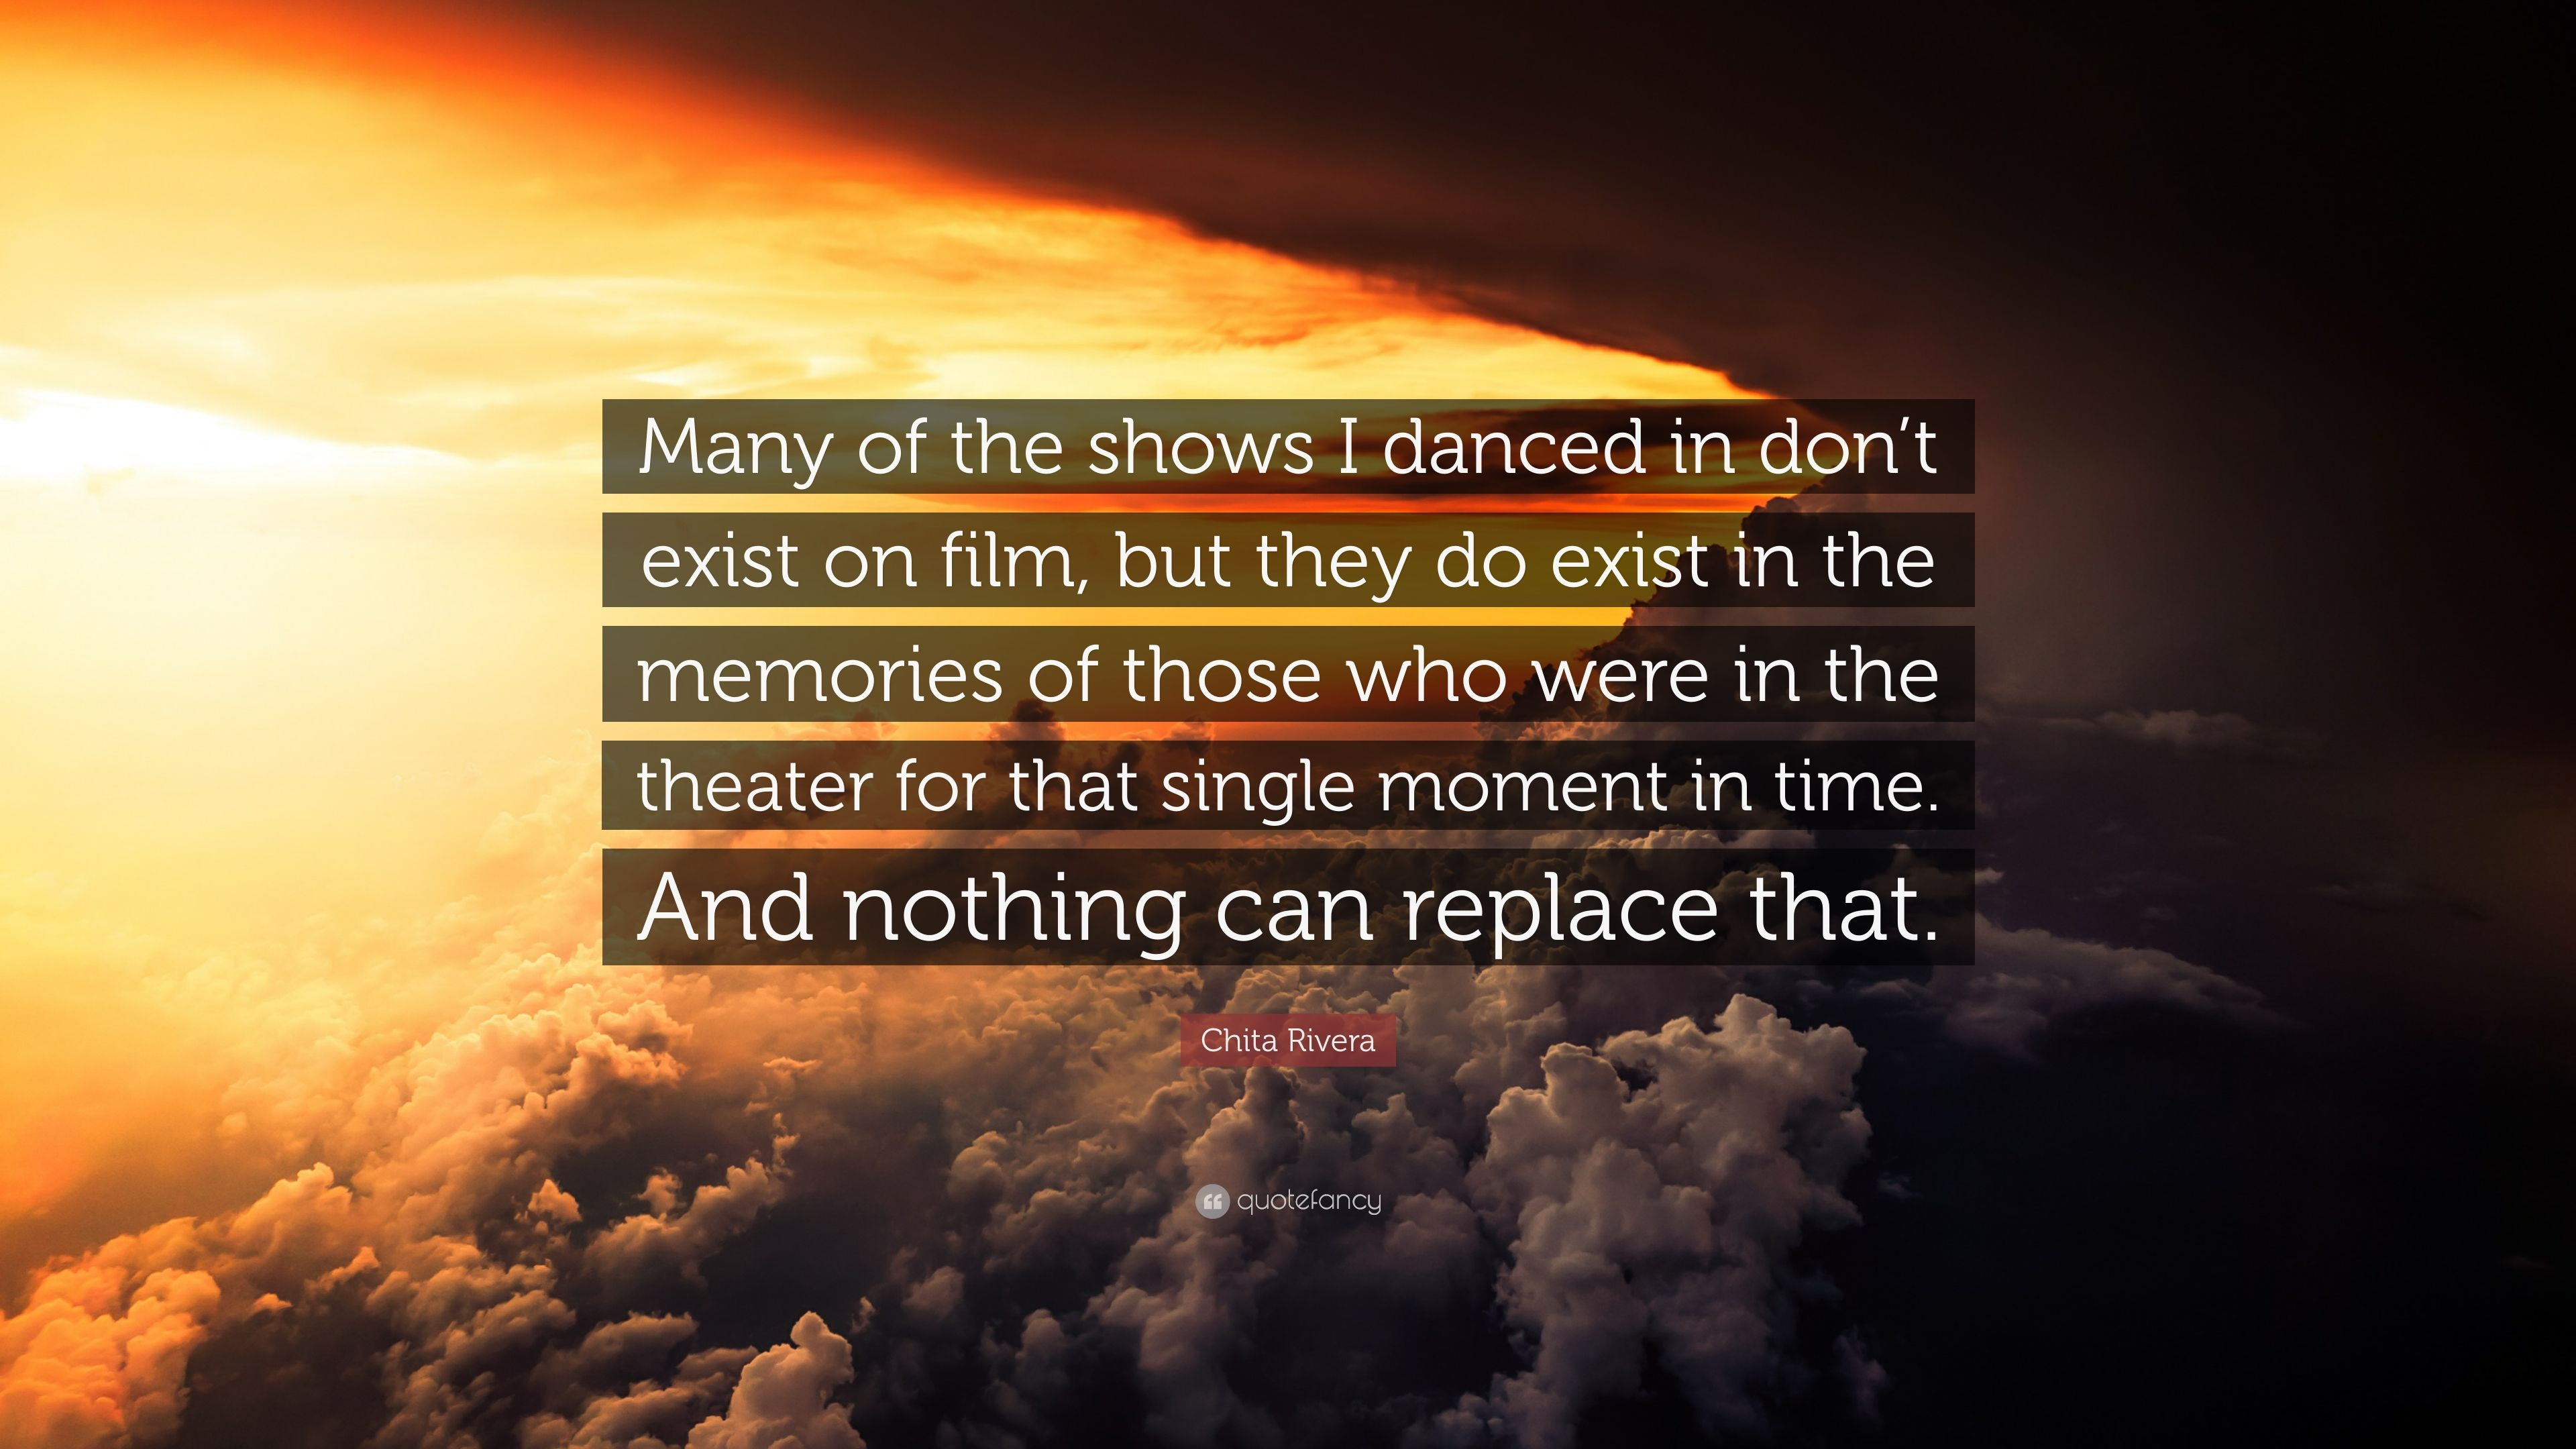 Chita Rivera Quote Many Of The Shows I Danced In Dont Exist On